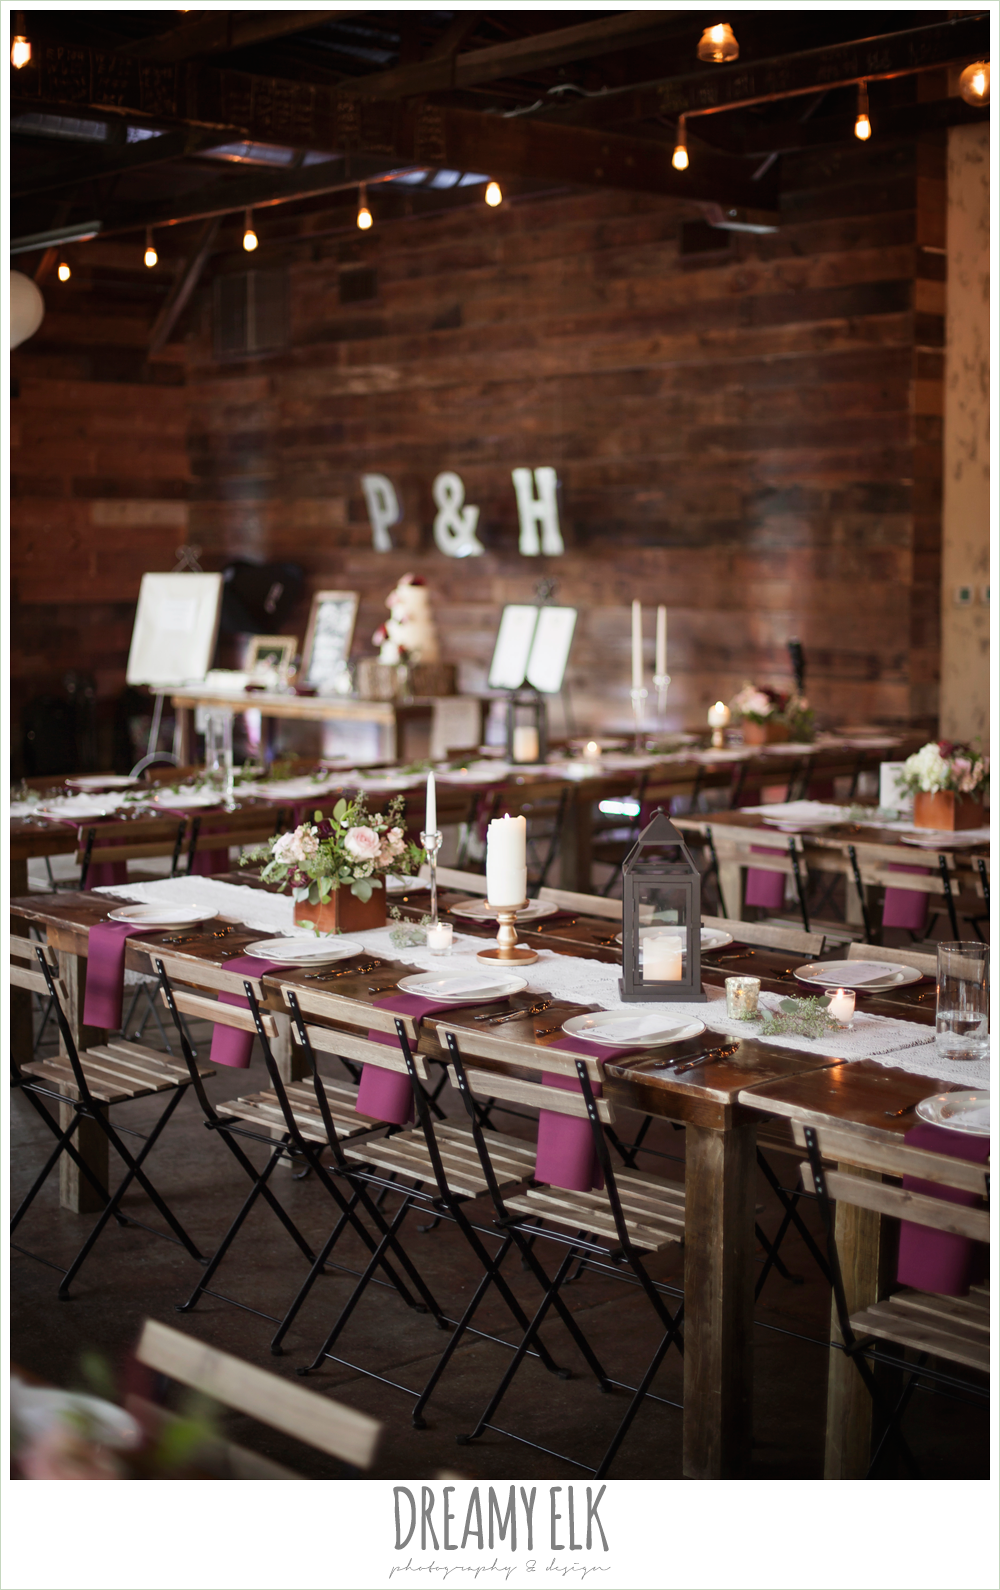 wedding reception decor, industrial, bride and groom portraits, the union on 8th wedding photo {dreamy elk photography and design}